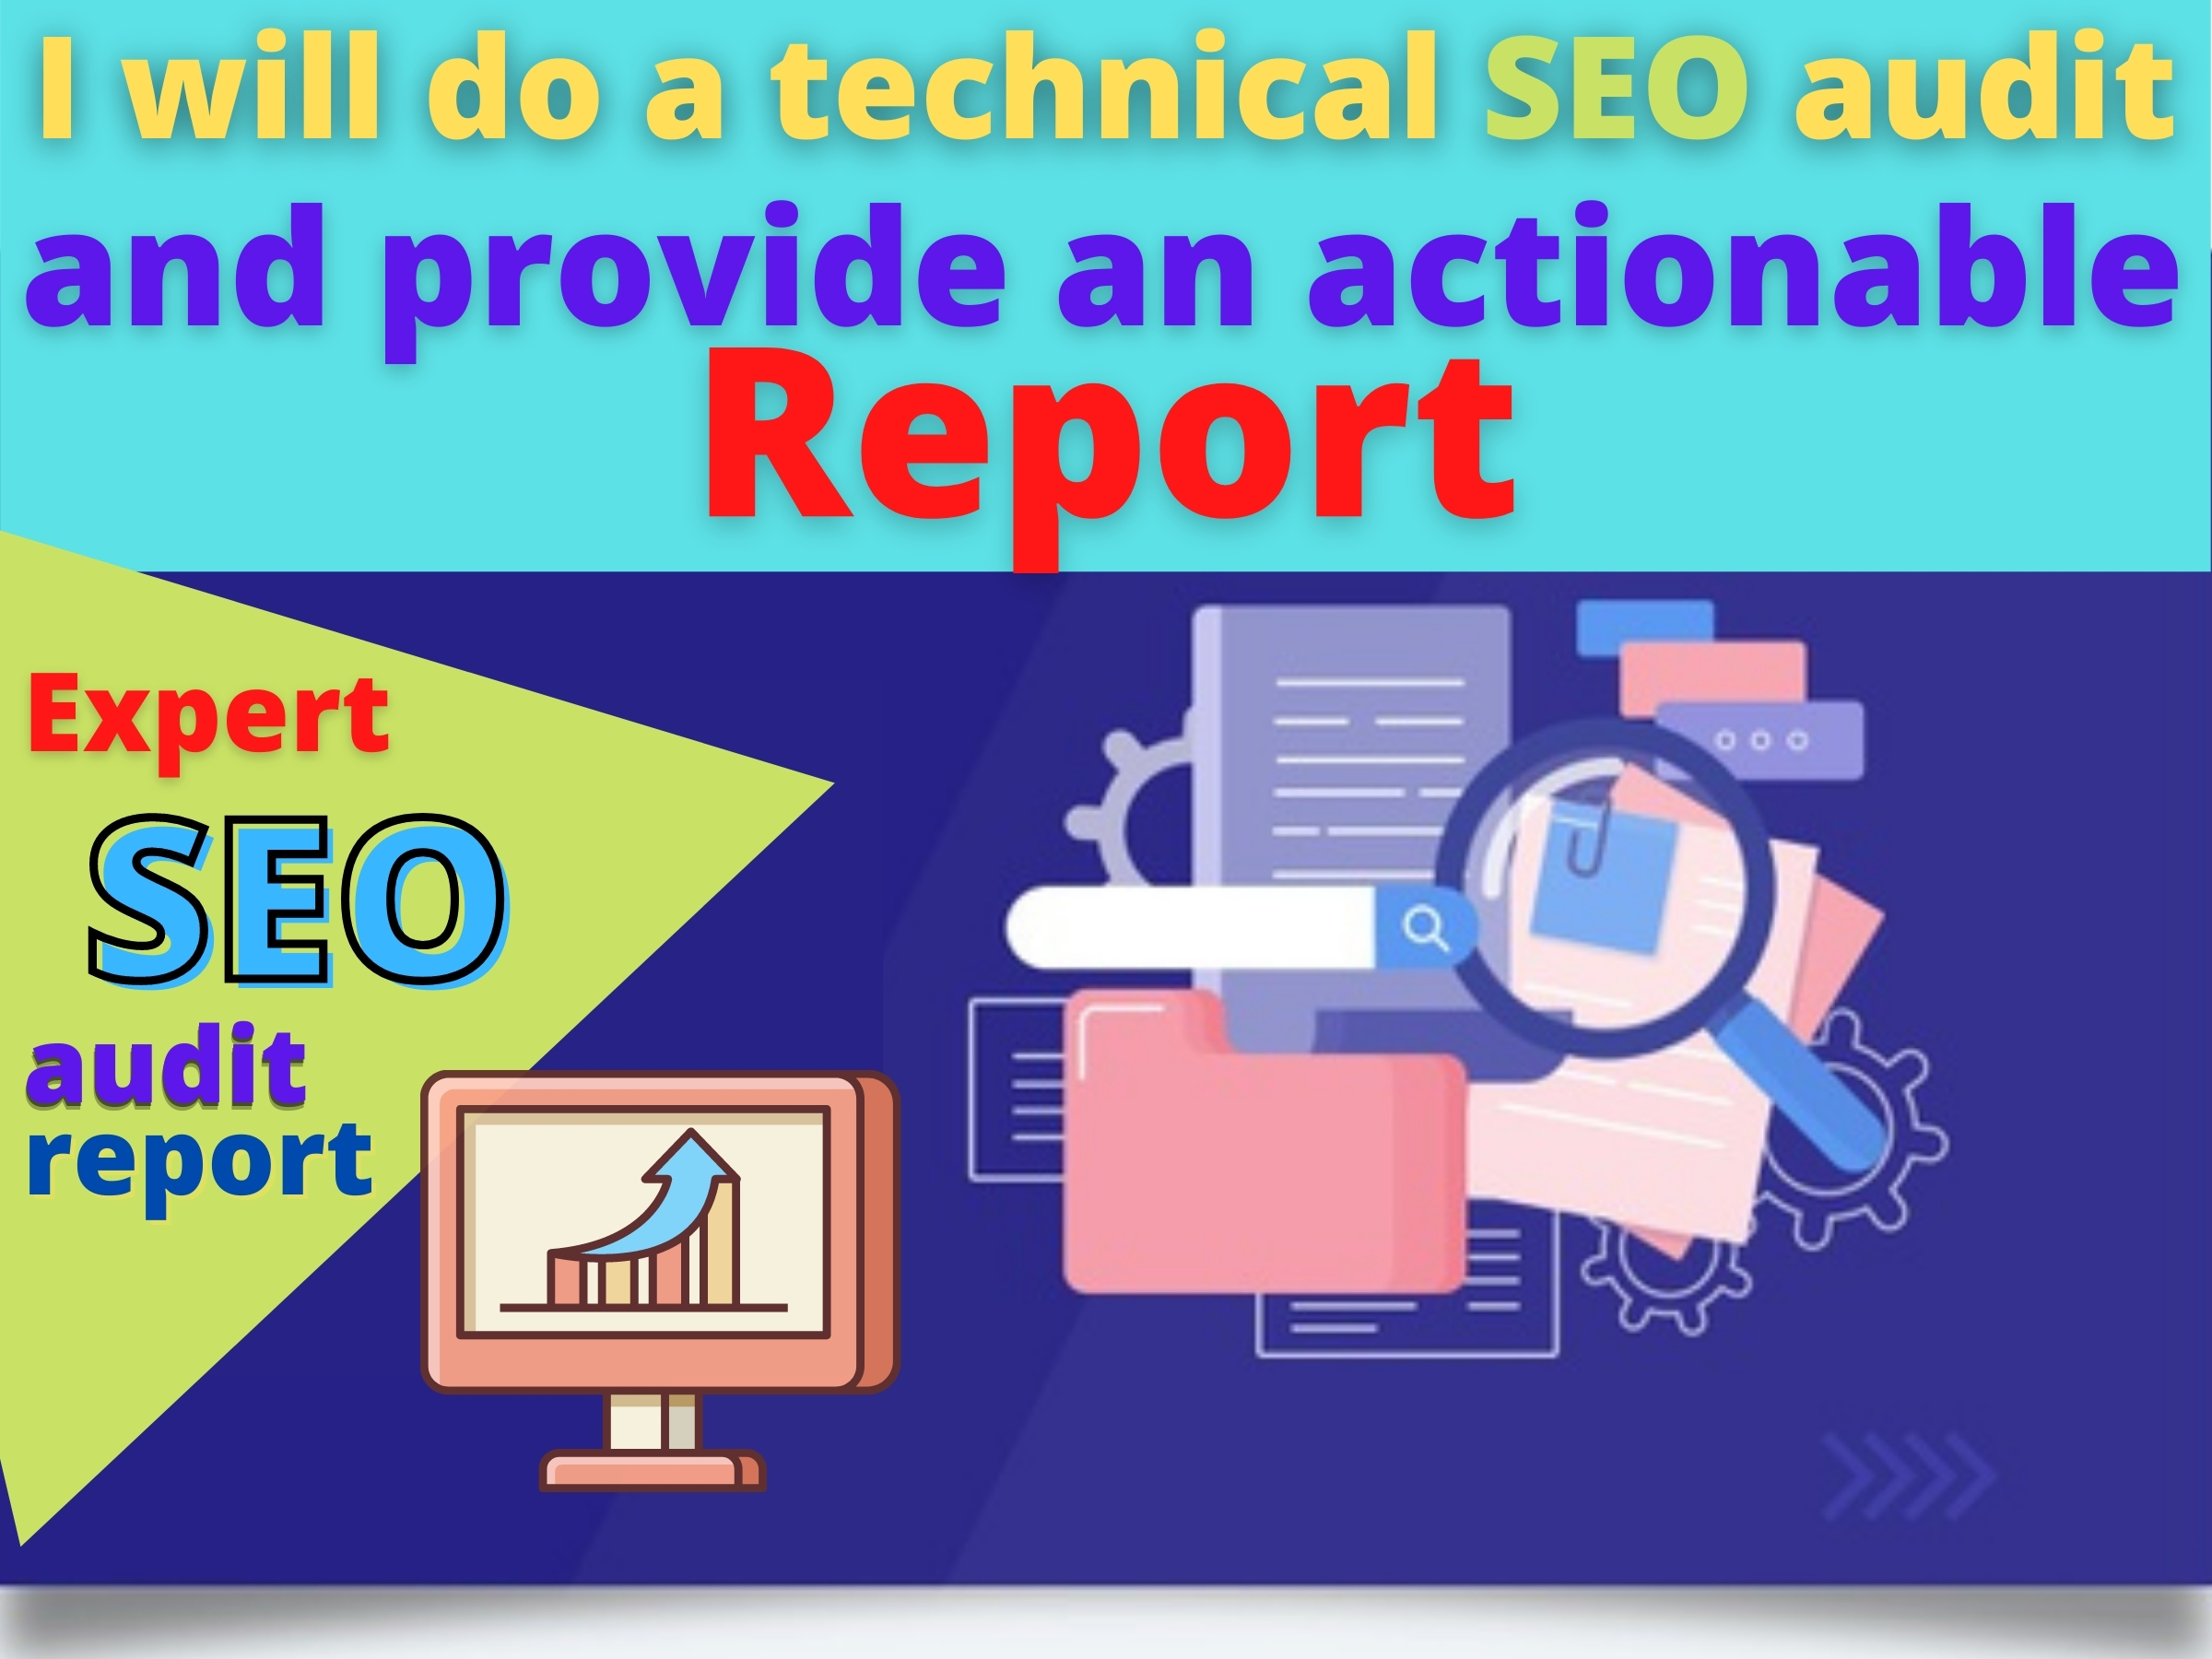 I will do a technical SEO audit and provide an actionable Report